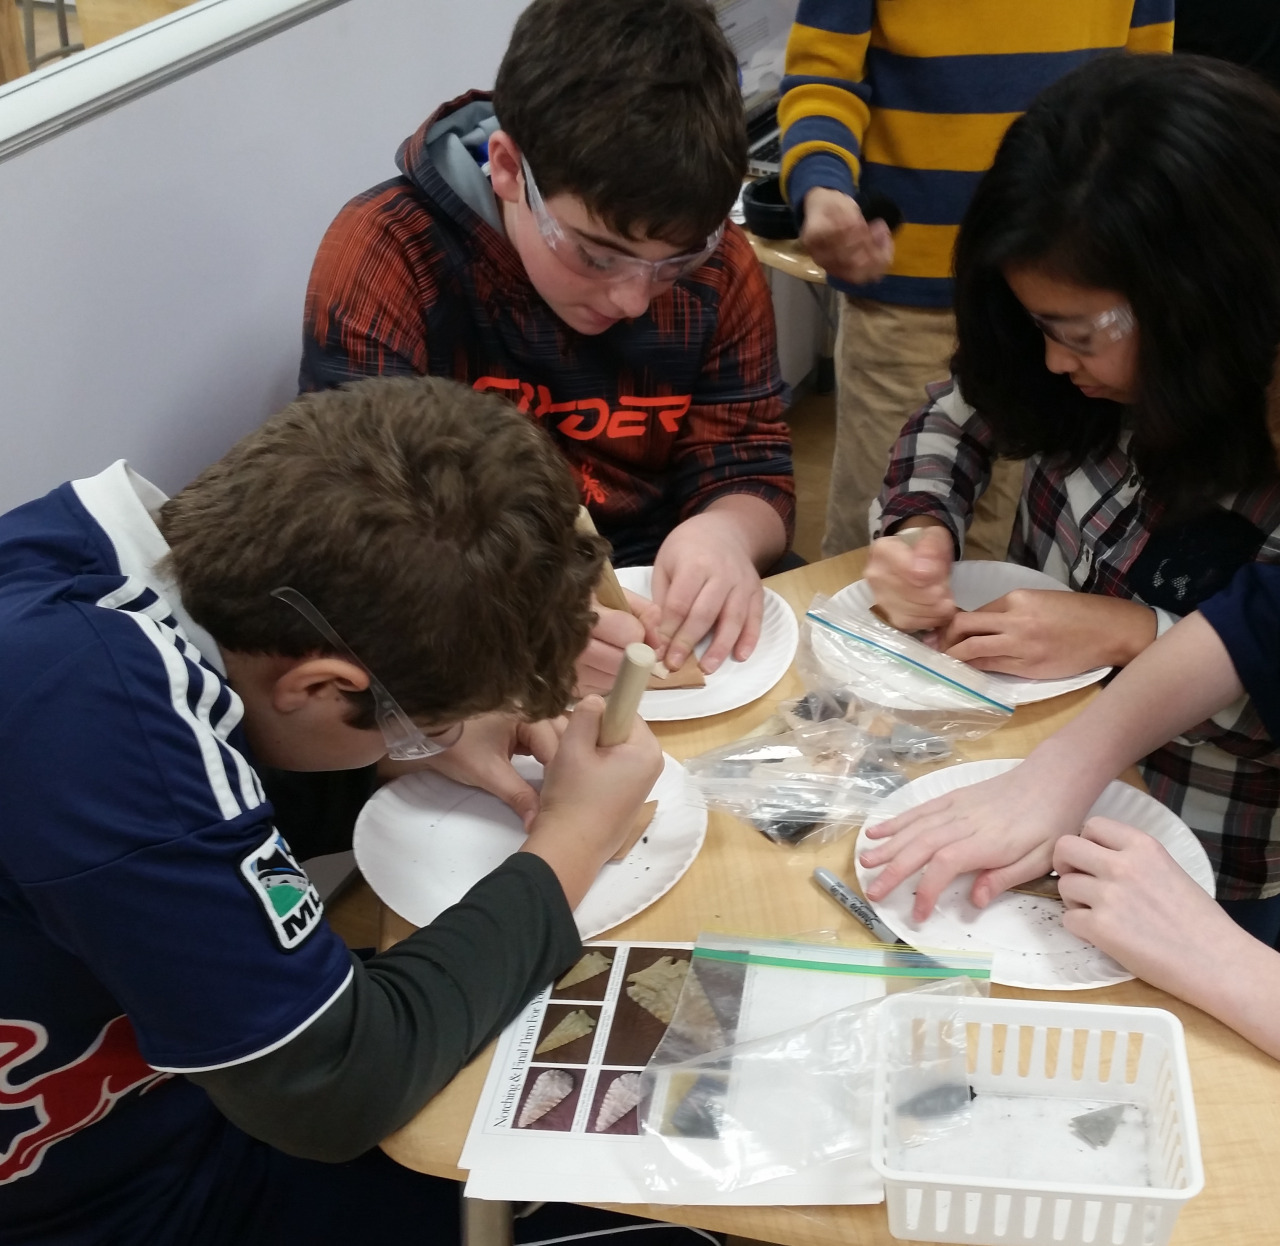 The Middle School students experienced what it was like to be a Native American having to make arrowheads.